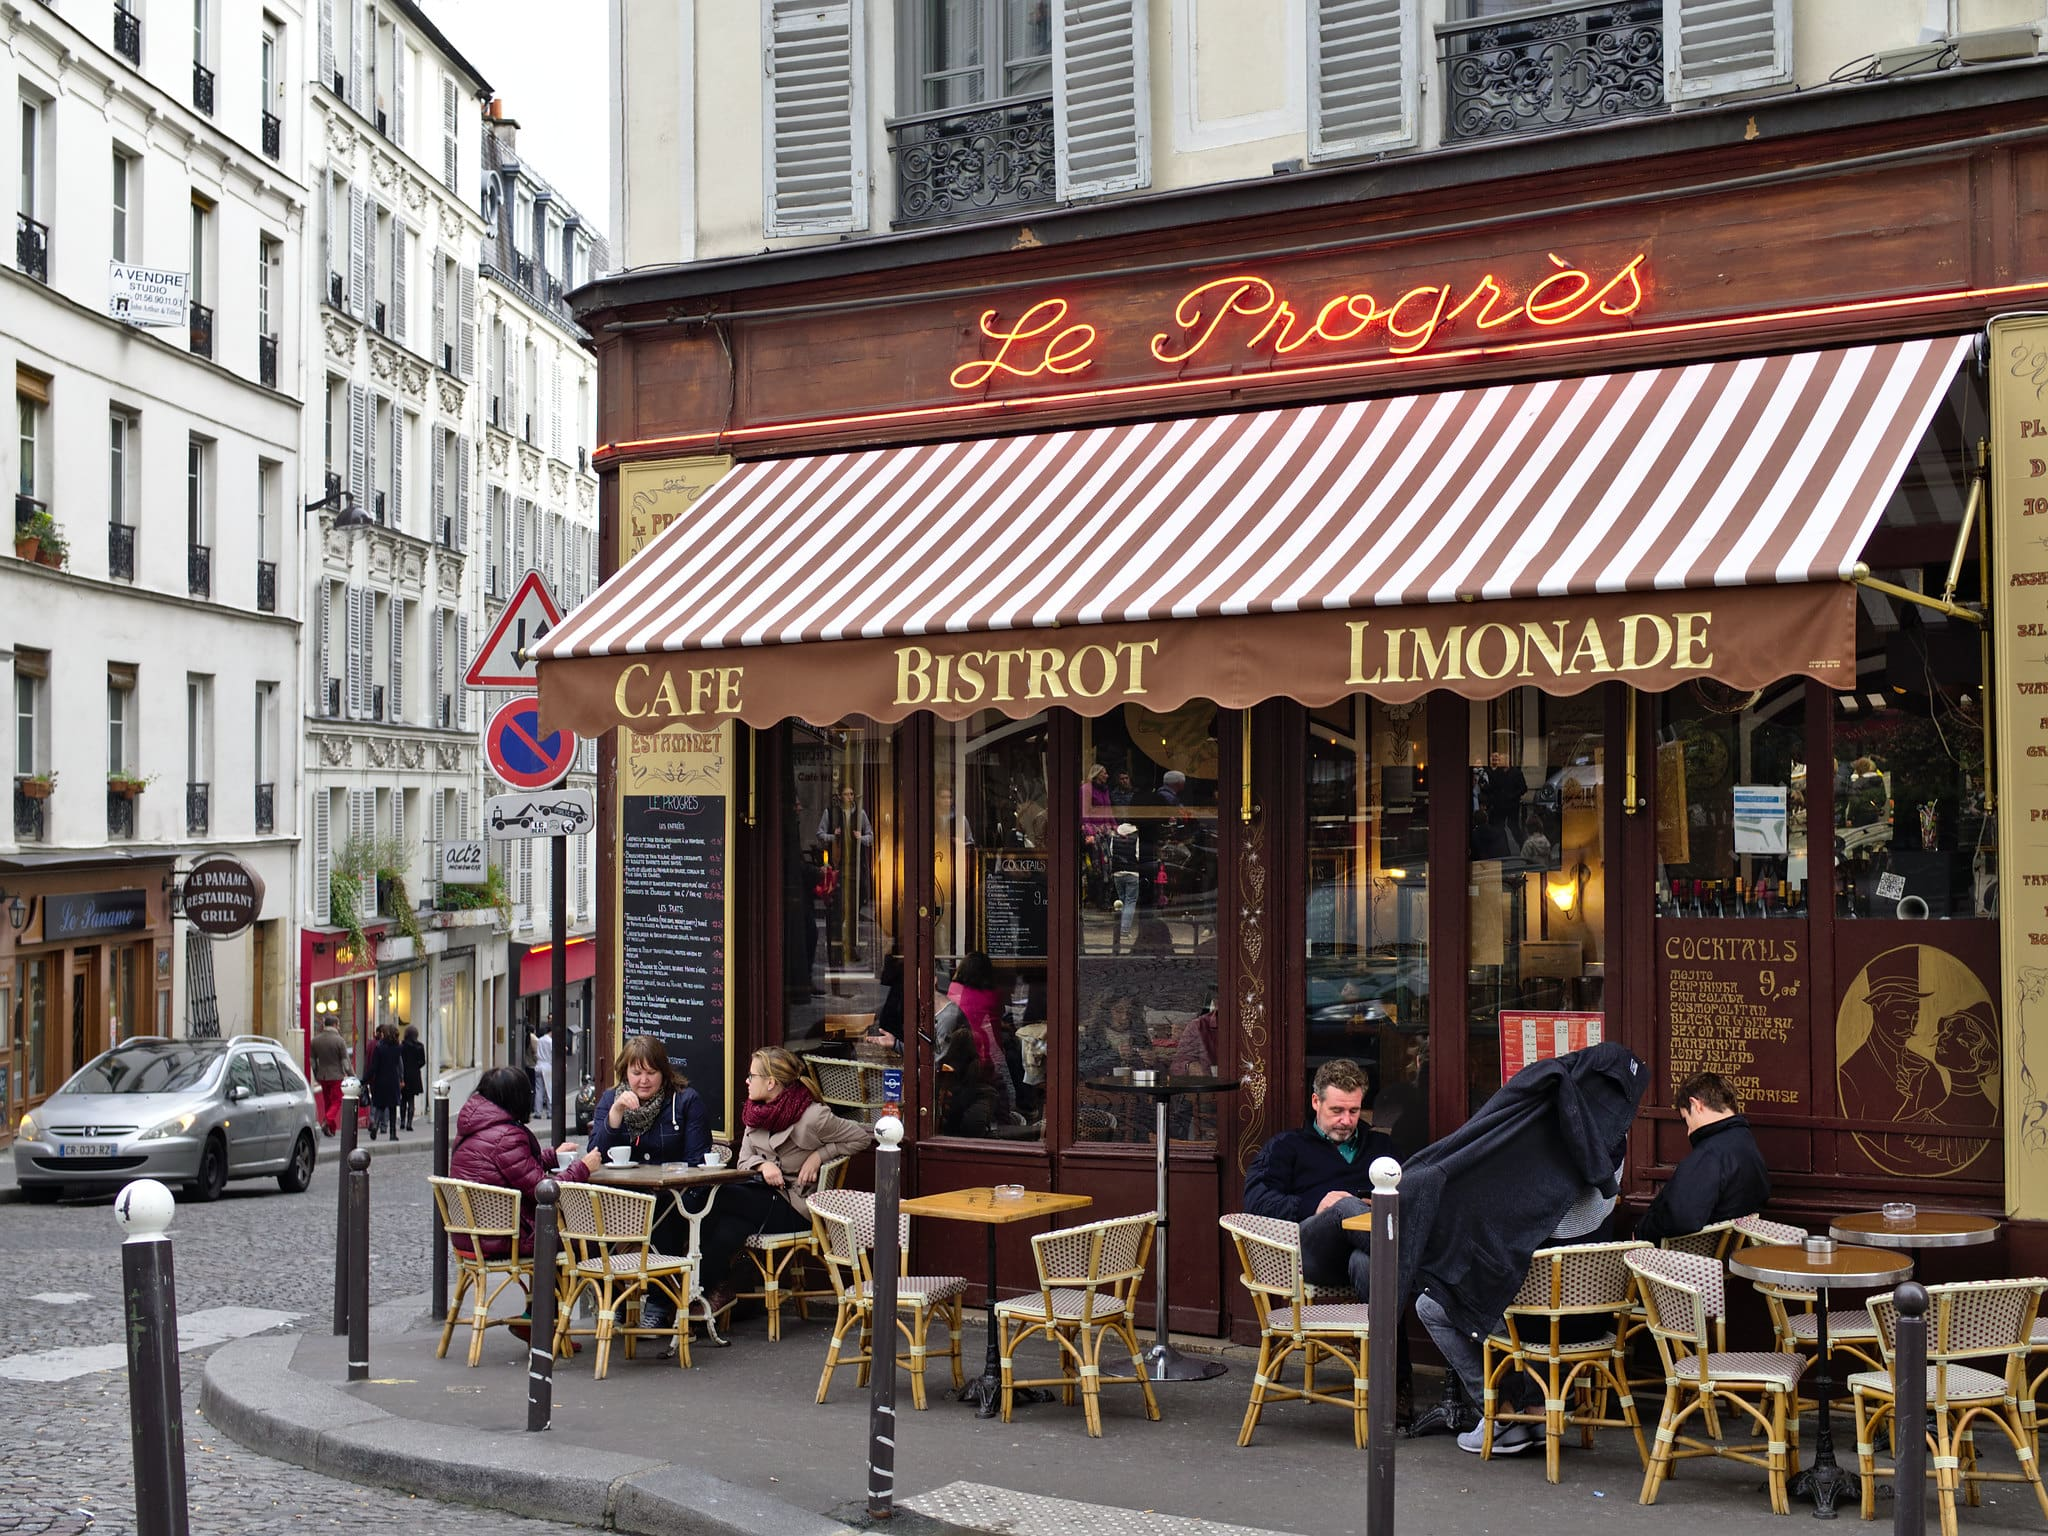 People-watching at a Parisian cafe is a classic thing to do in France